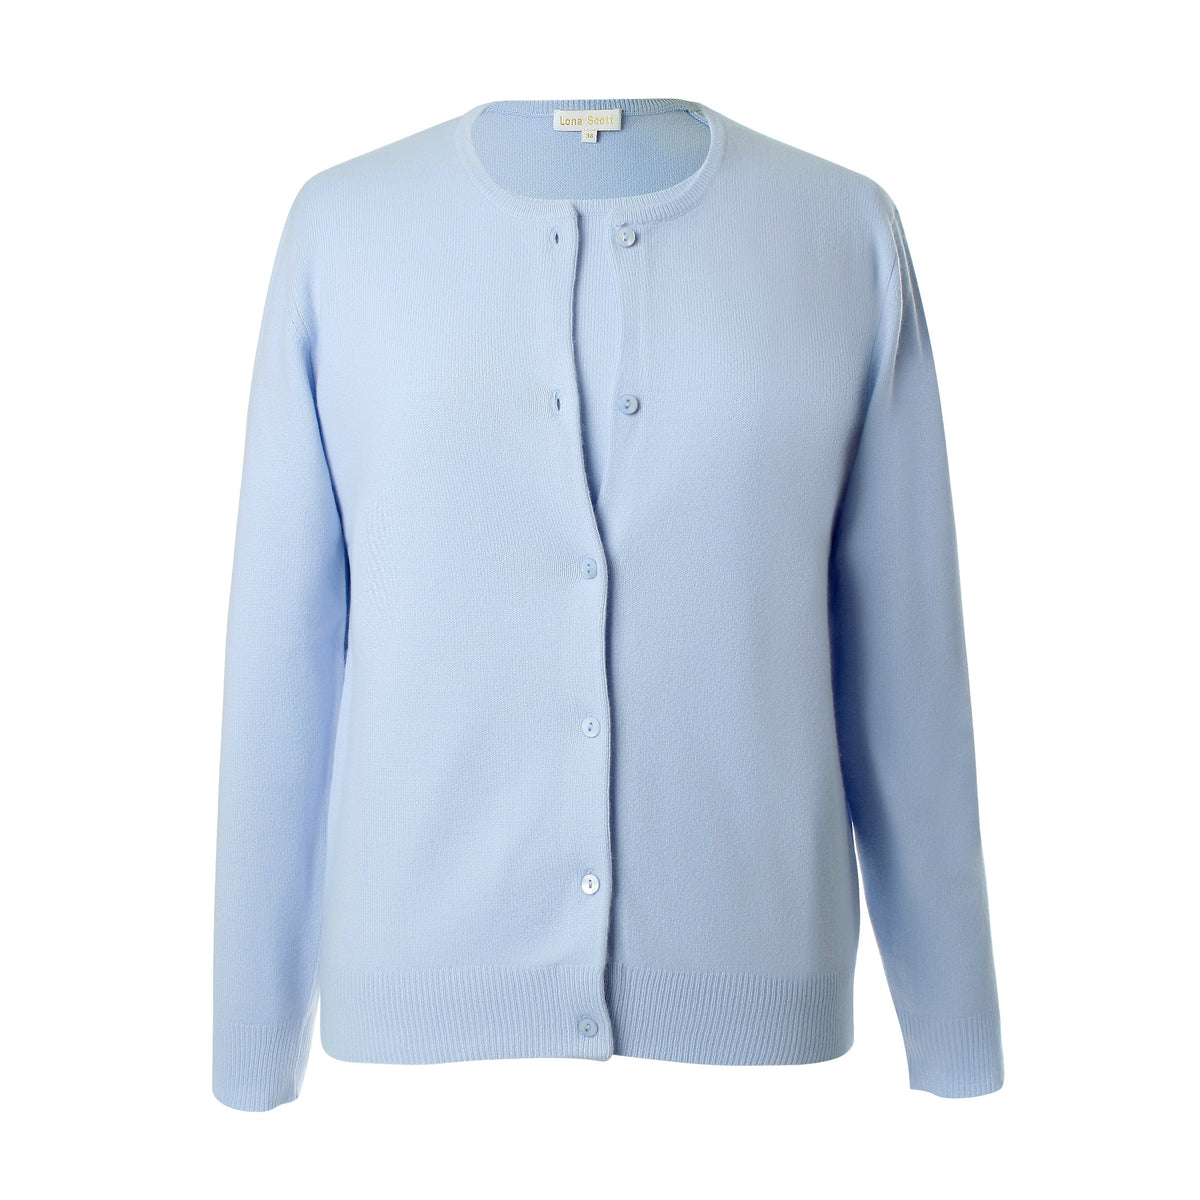 Ladies Sky Blue Cashmere Sweater Set | Cardigan | The Cashmere Choice London